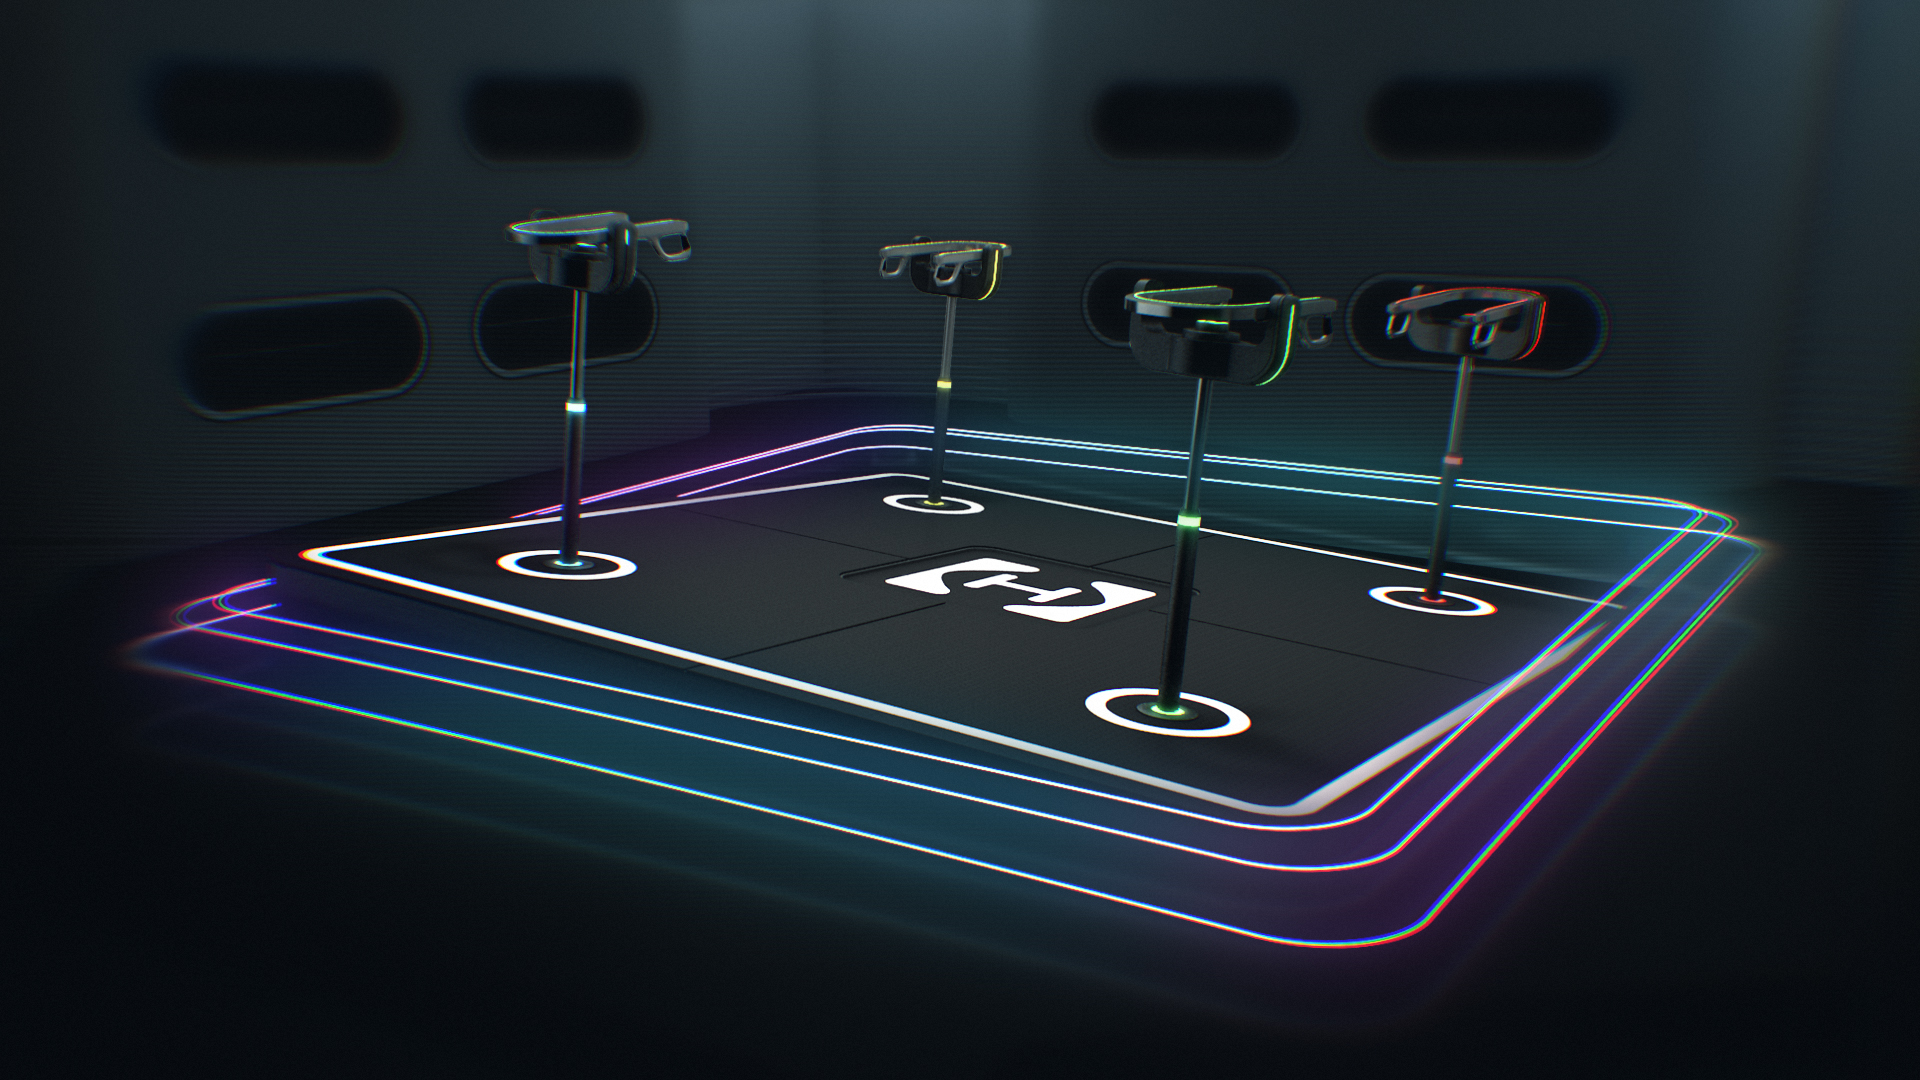 Hyperdeck platform titled with neon shapes tracing the edge